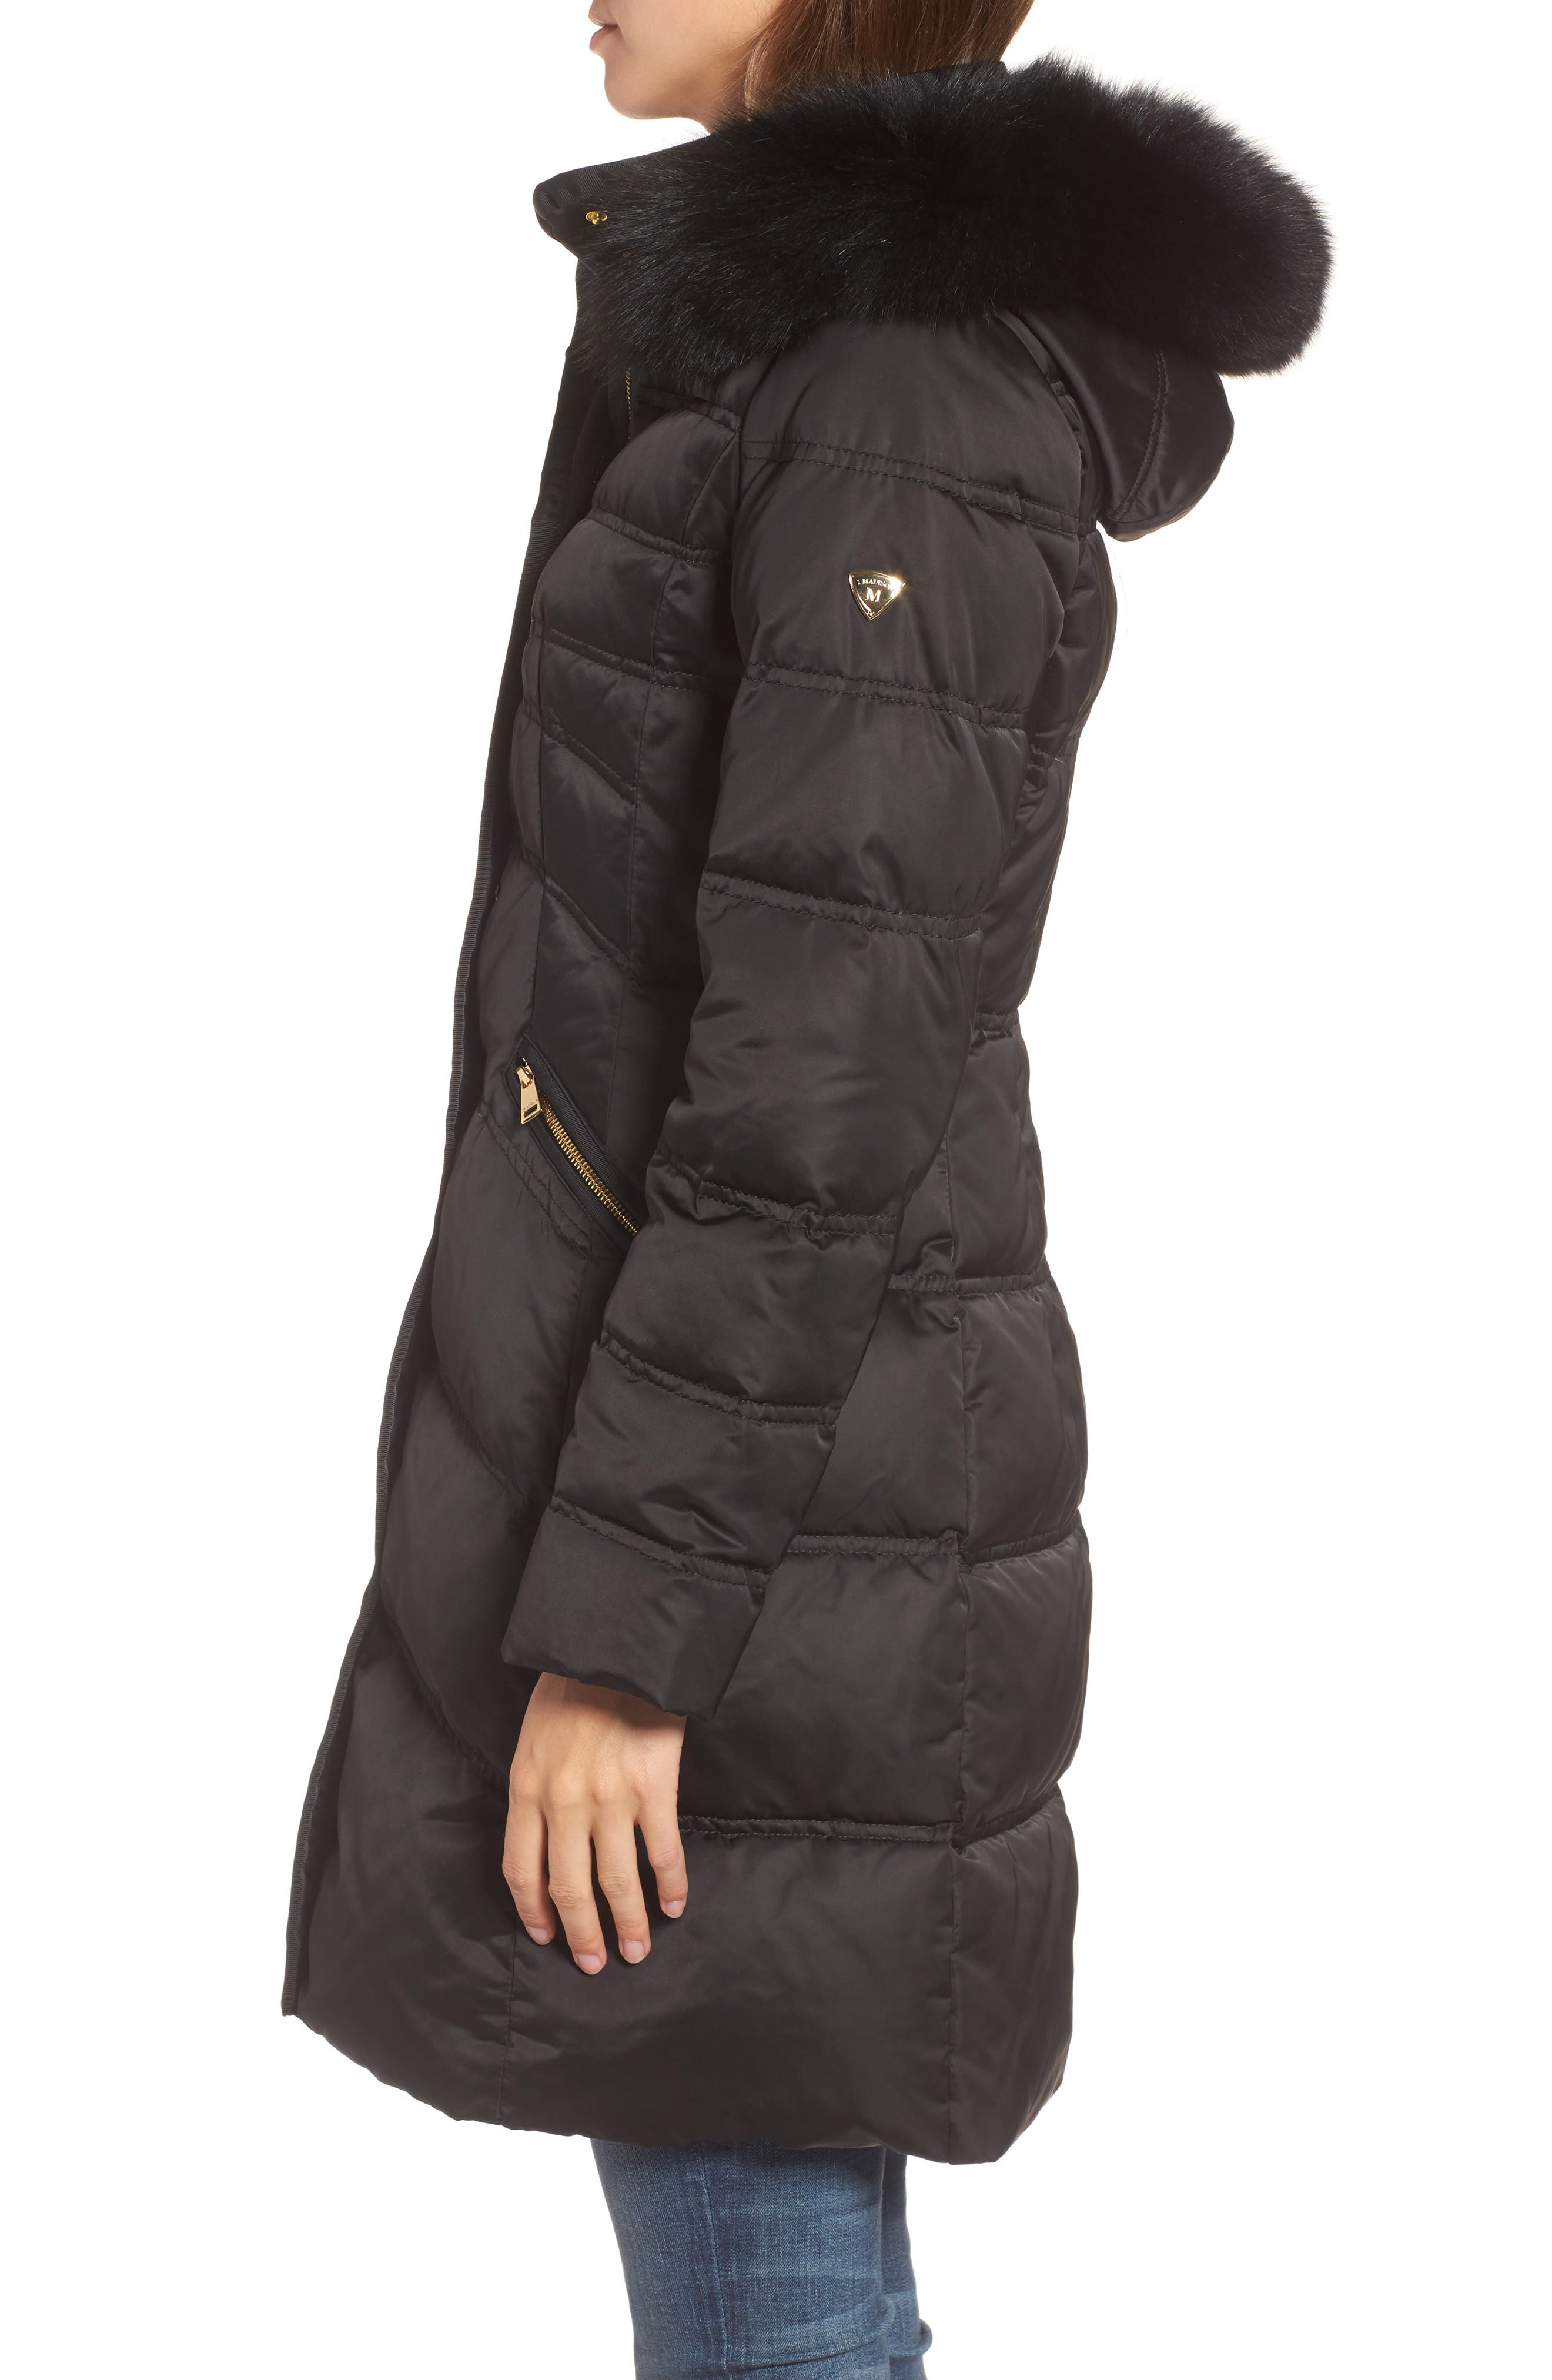 Insulated Parka with Genuine Fox Fur Trim,                             Alternate thumbnail 3, color,                             Black